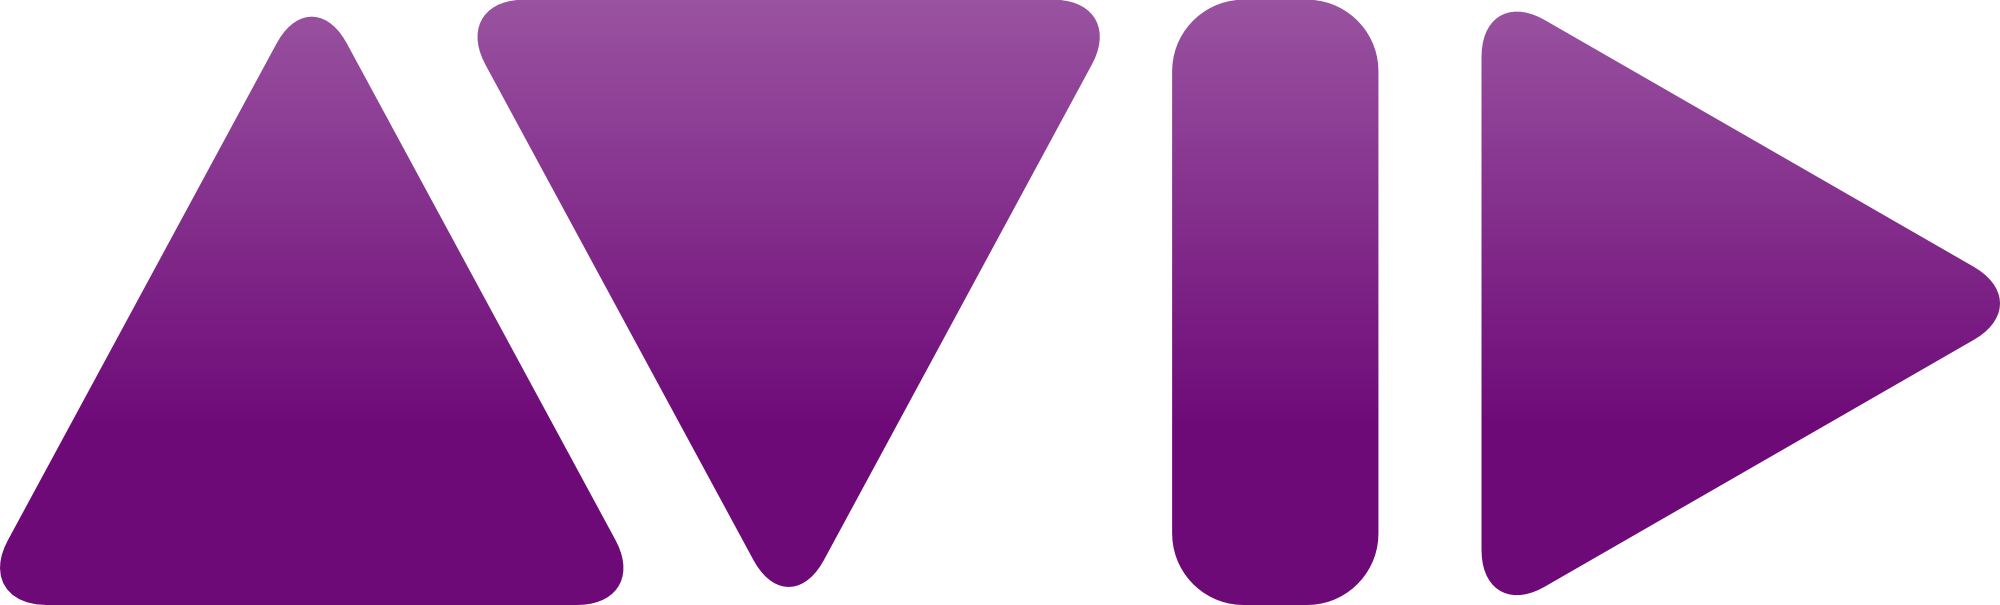 Avid Technology, Inc. (AVID)